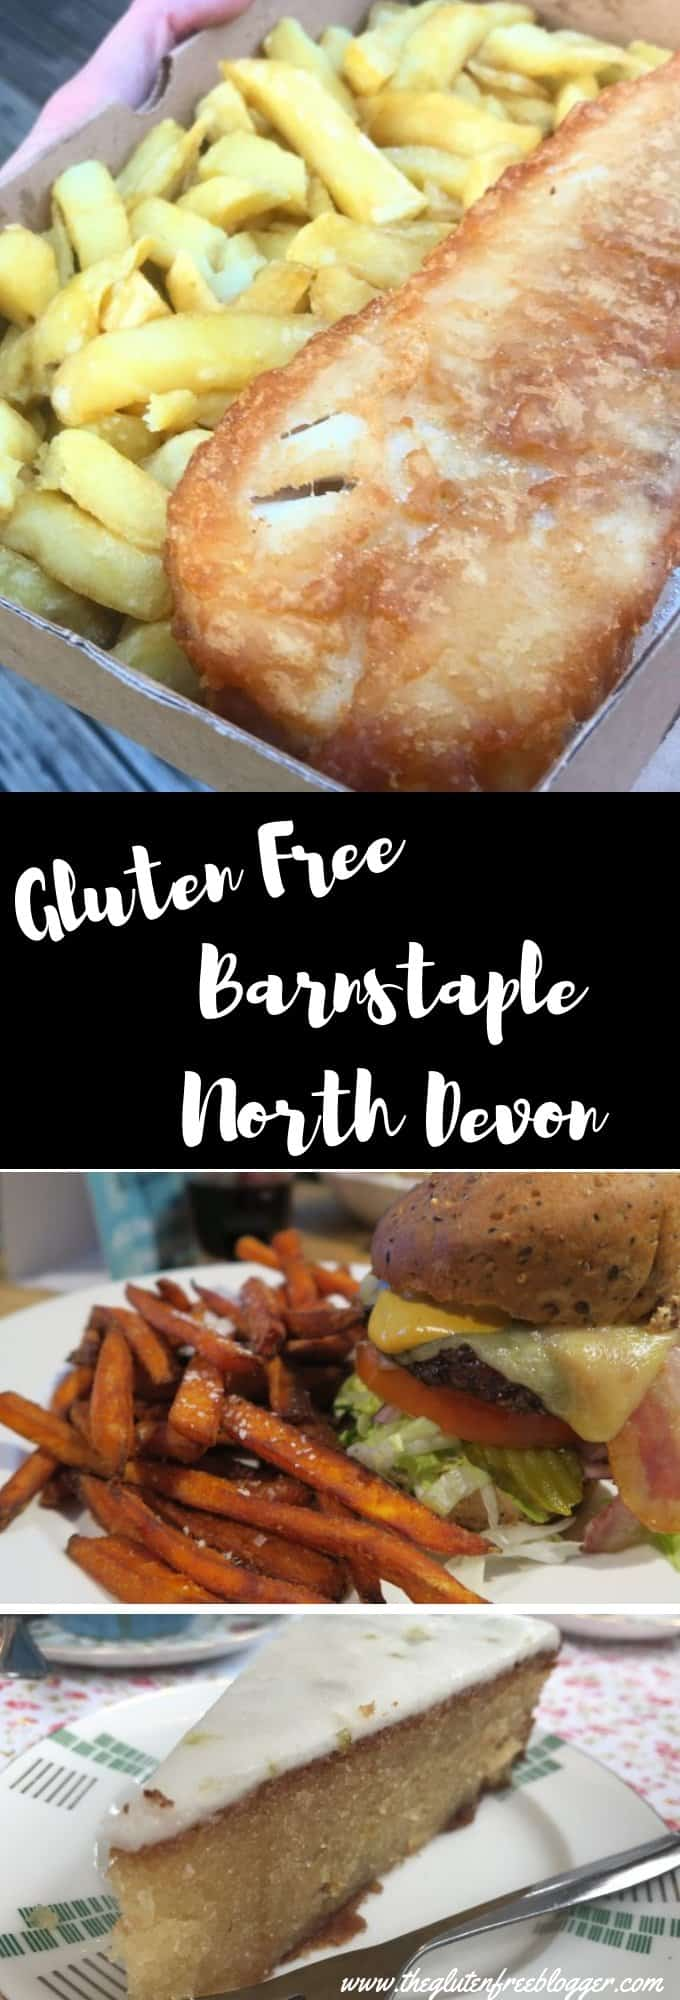 gluten free barnstaple - north devon - coeliac - restaurant - eating out